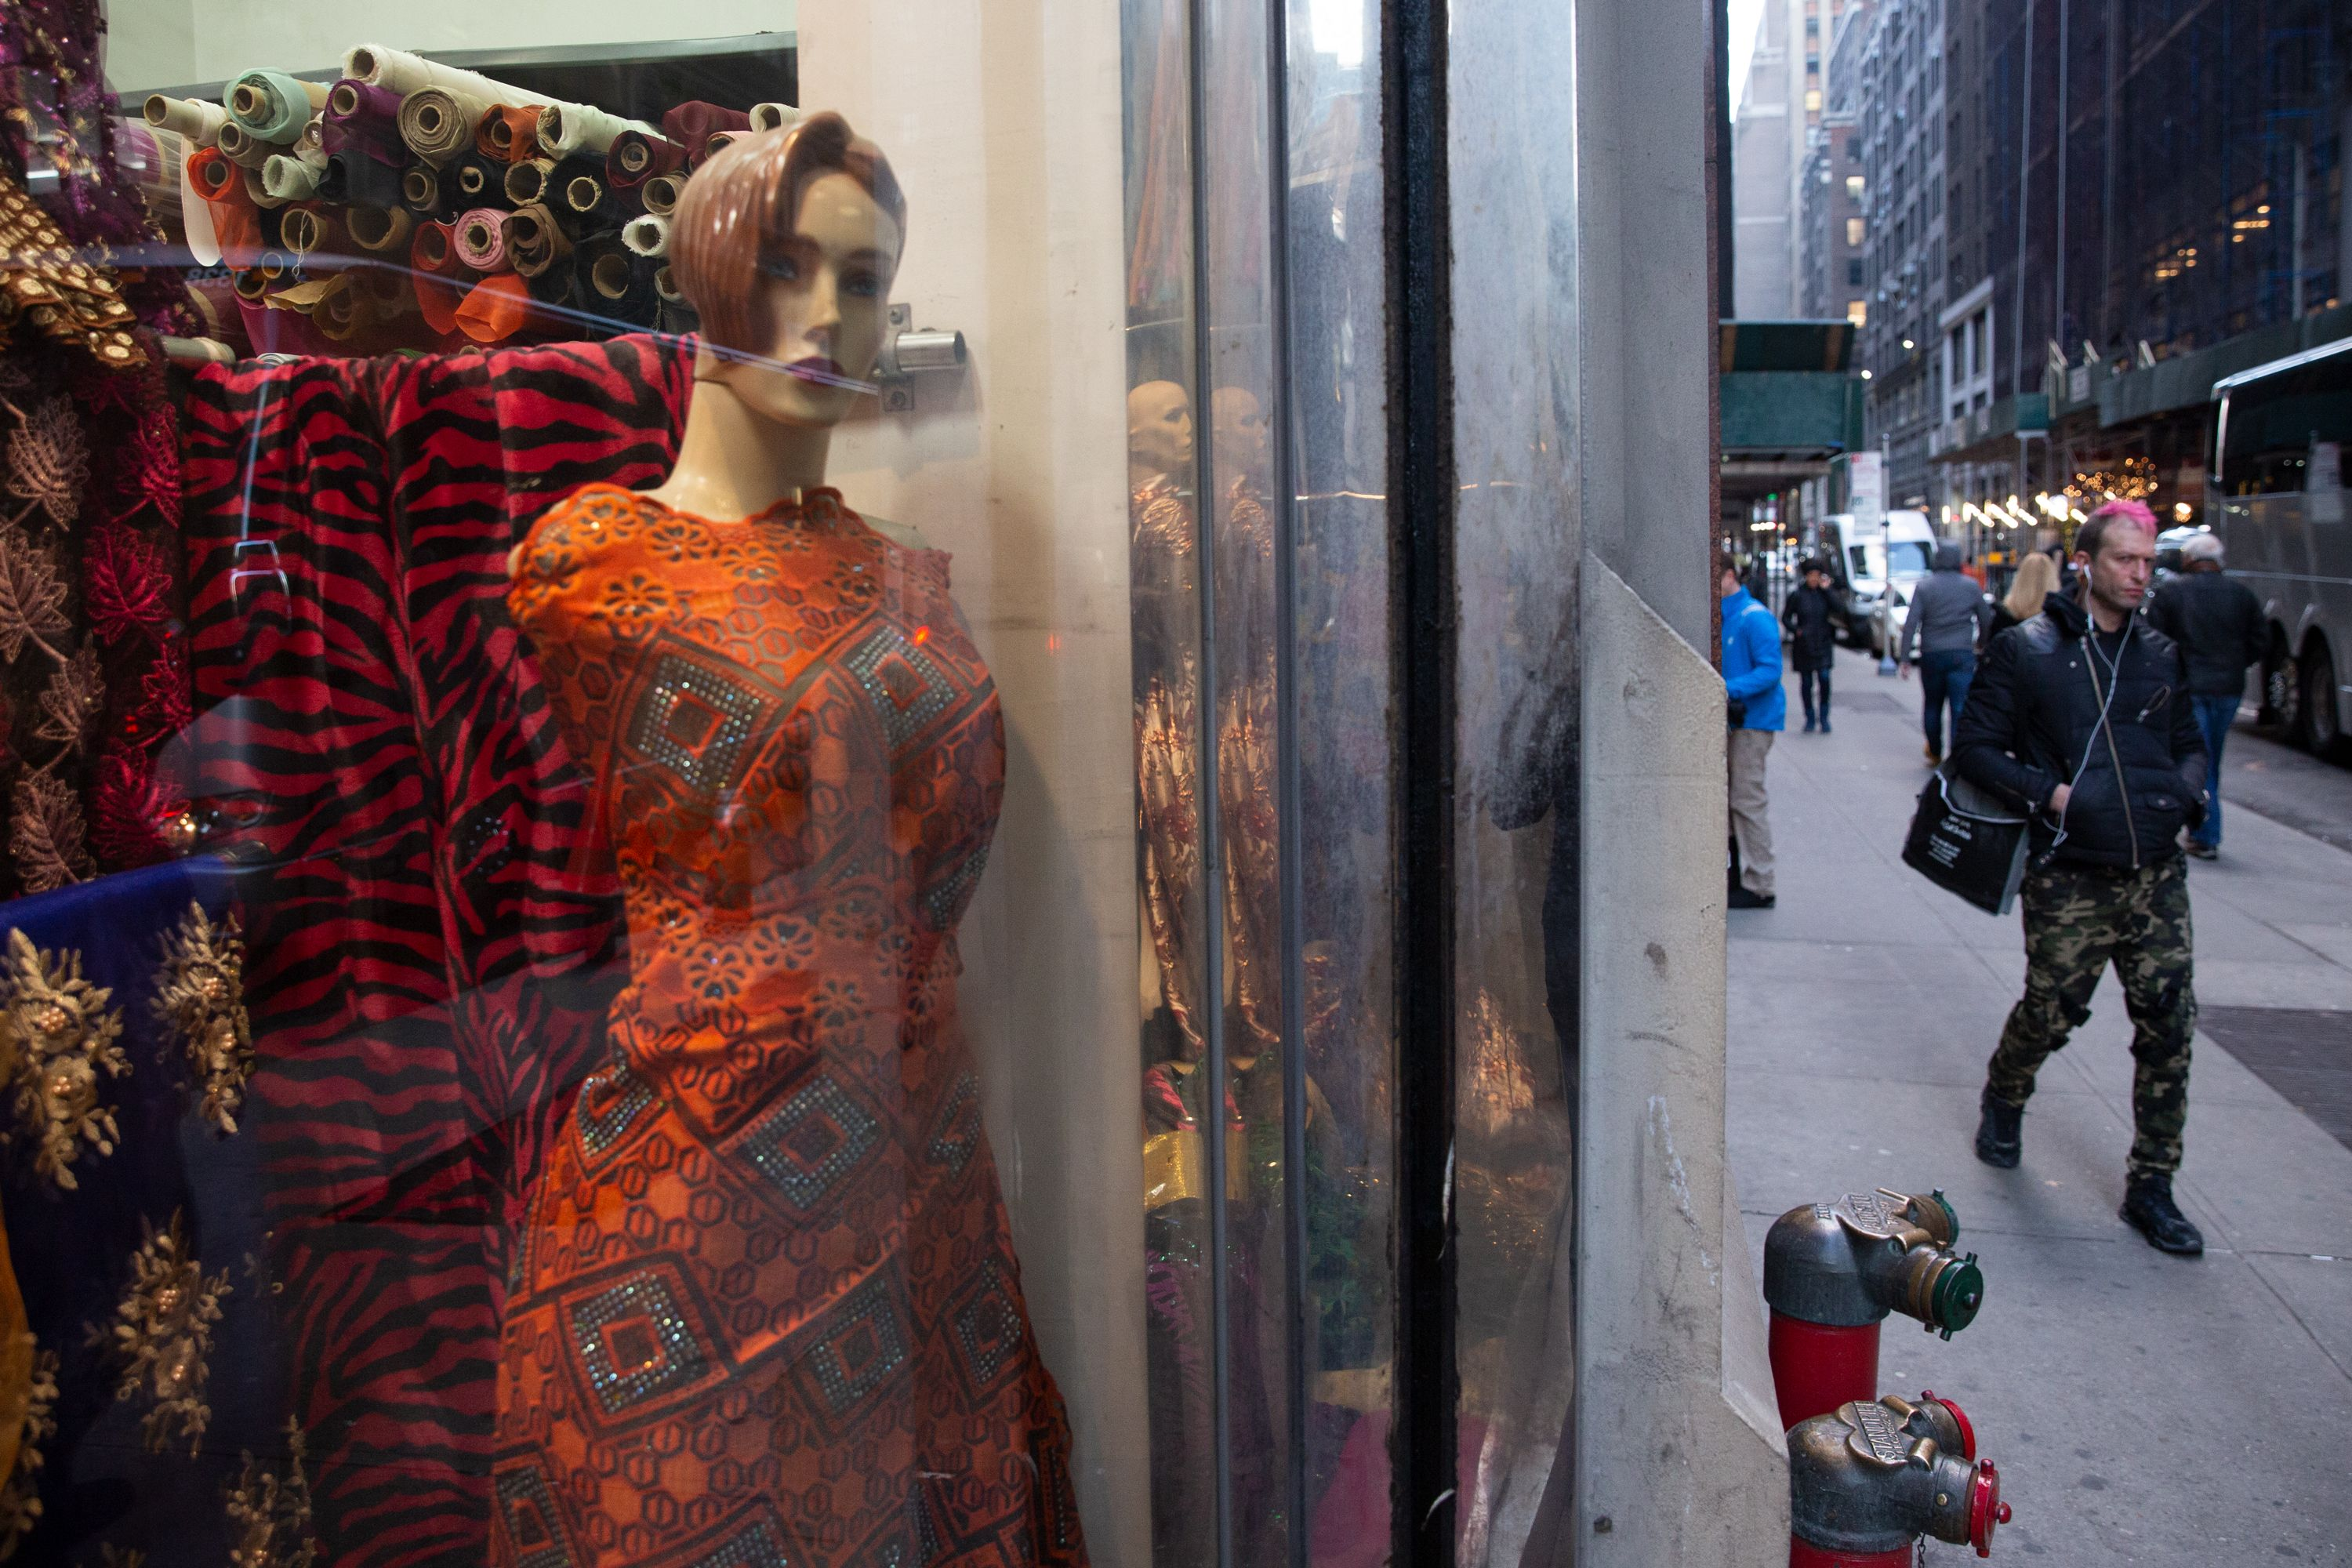 A fabric wholesaler in the Garment District.